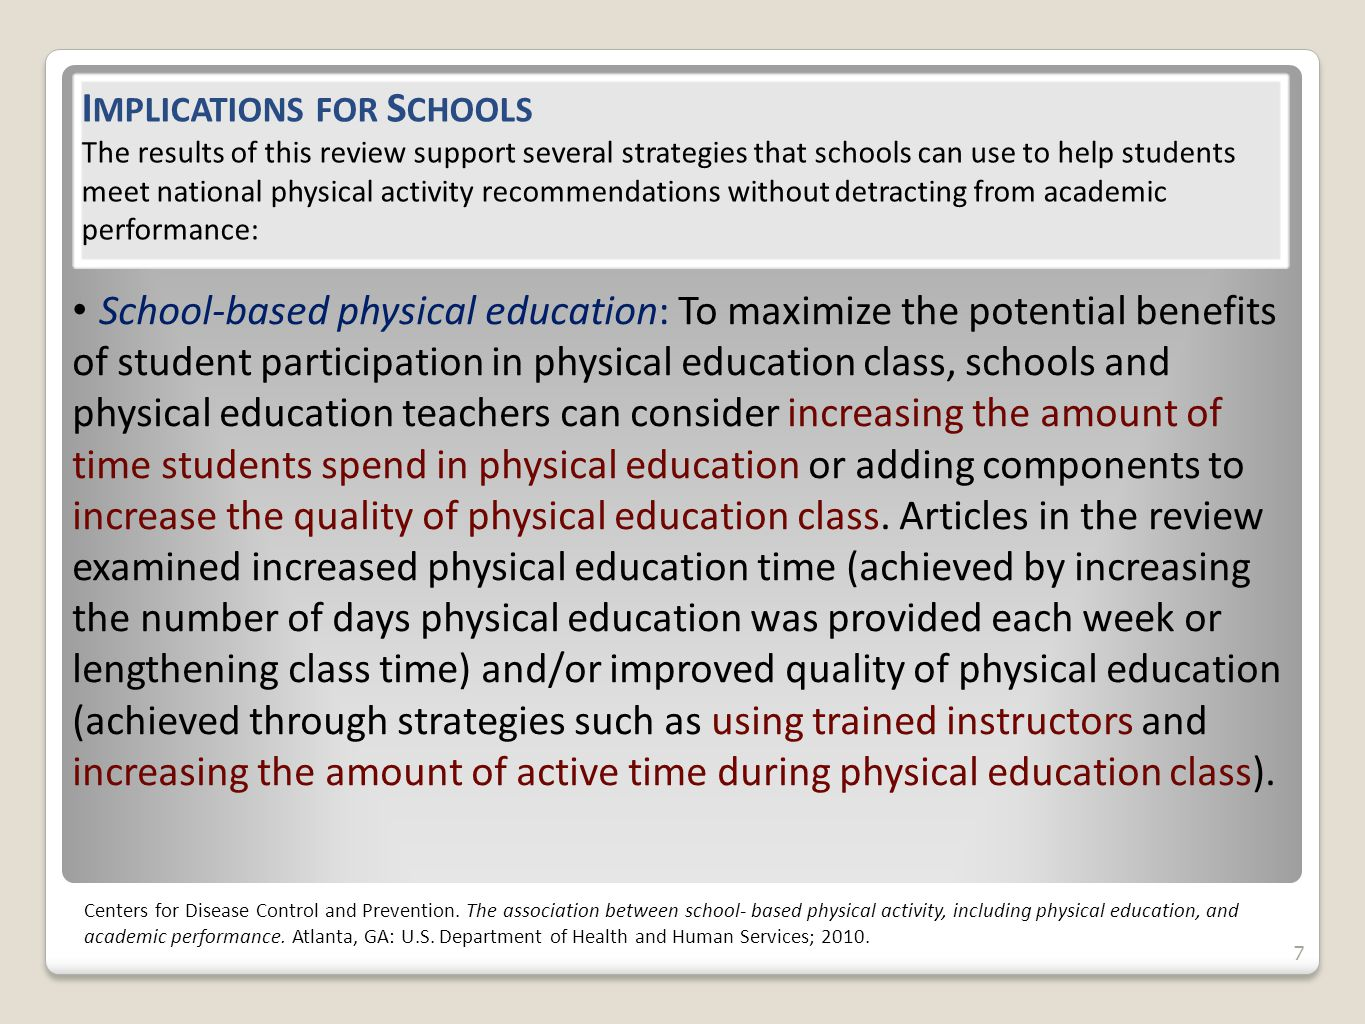 88 Recess: School boards, superintendents, principals, and teachers can feel confident that providing recess to students on a regular basis may benefit academic behaviors, while also facilitating social development and contributing to overall physical activity and its associated health benefits.